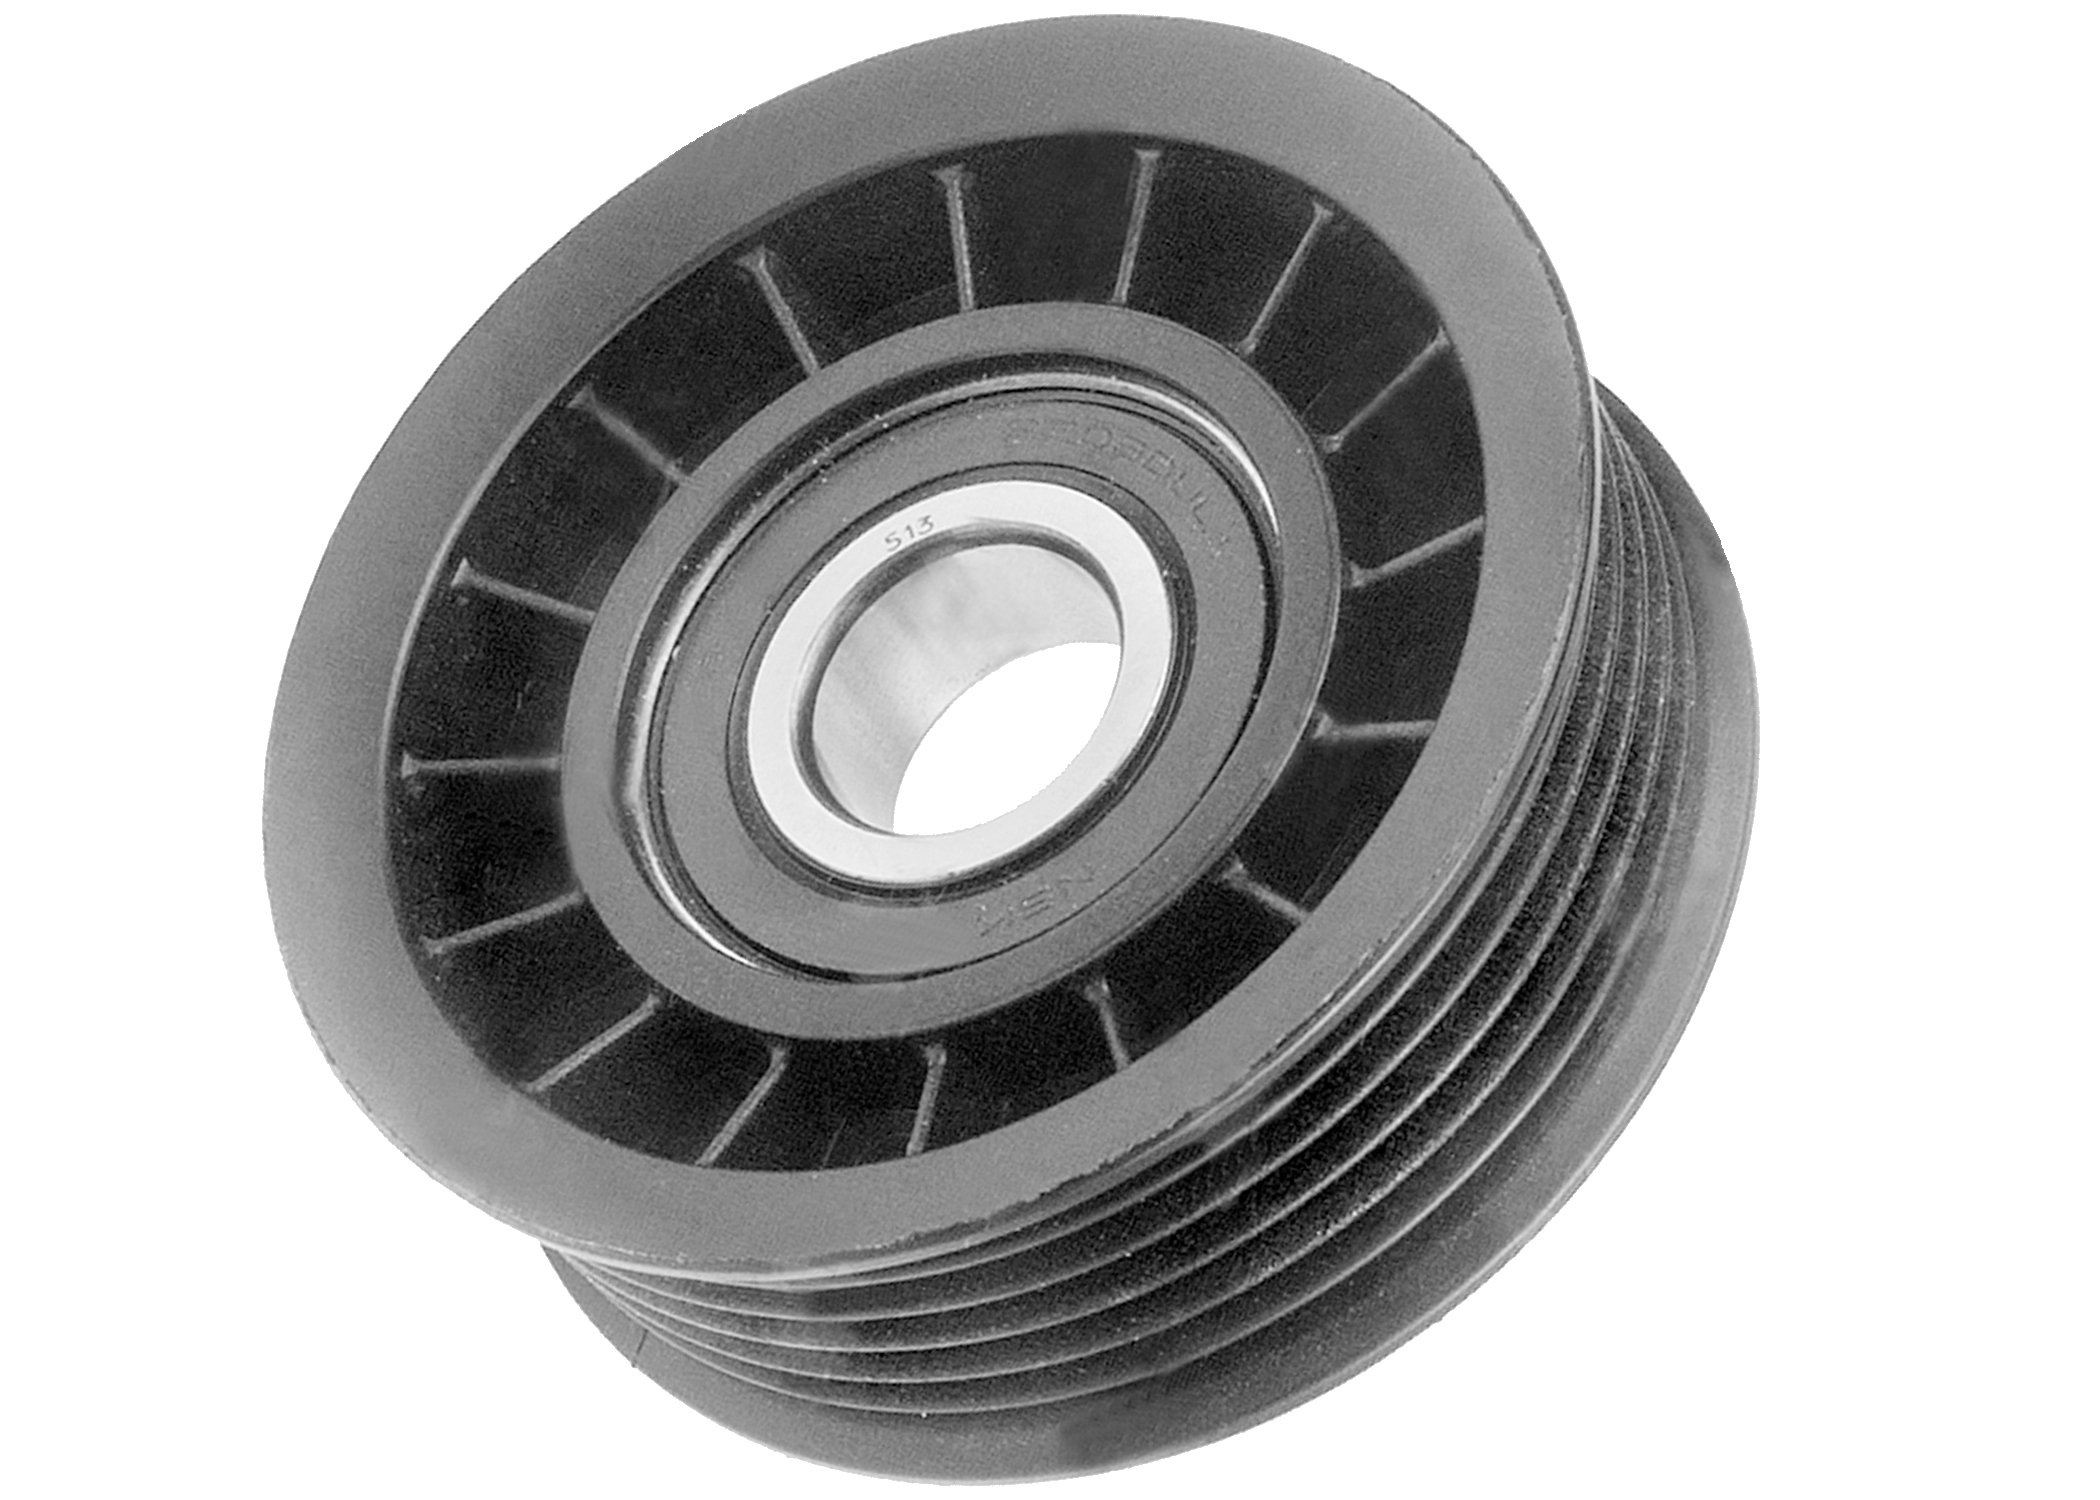 ACDelco 15-40486 Professional Air Conditioning Drive Belt Idler Pulley